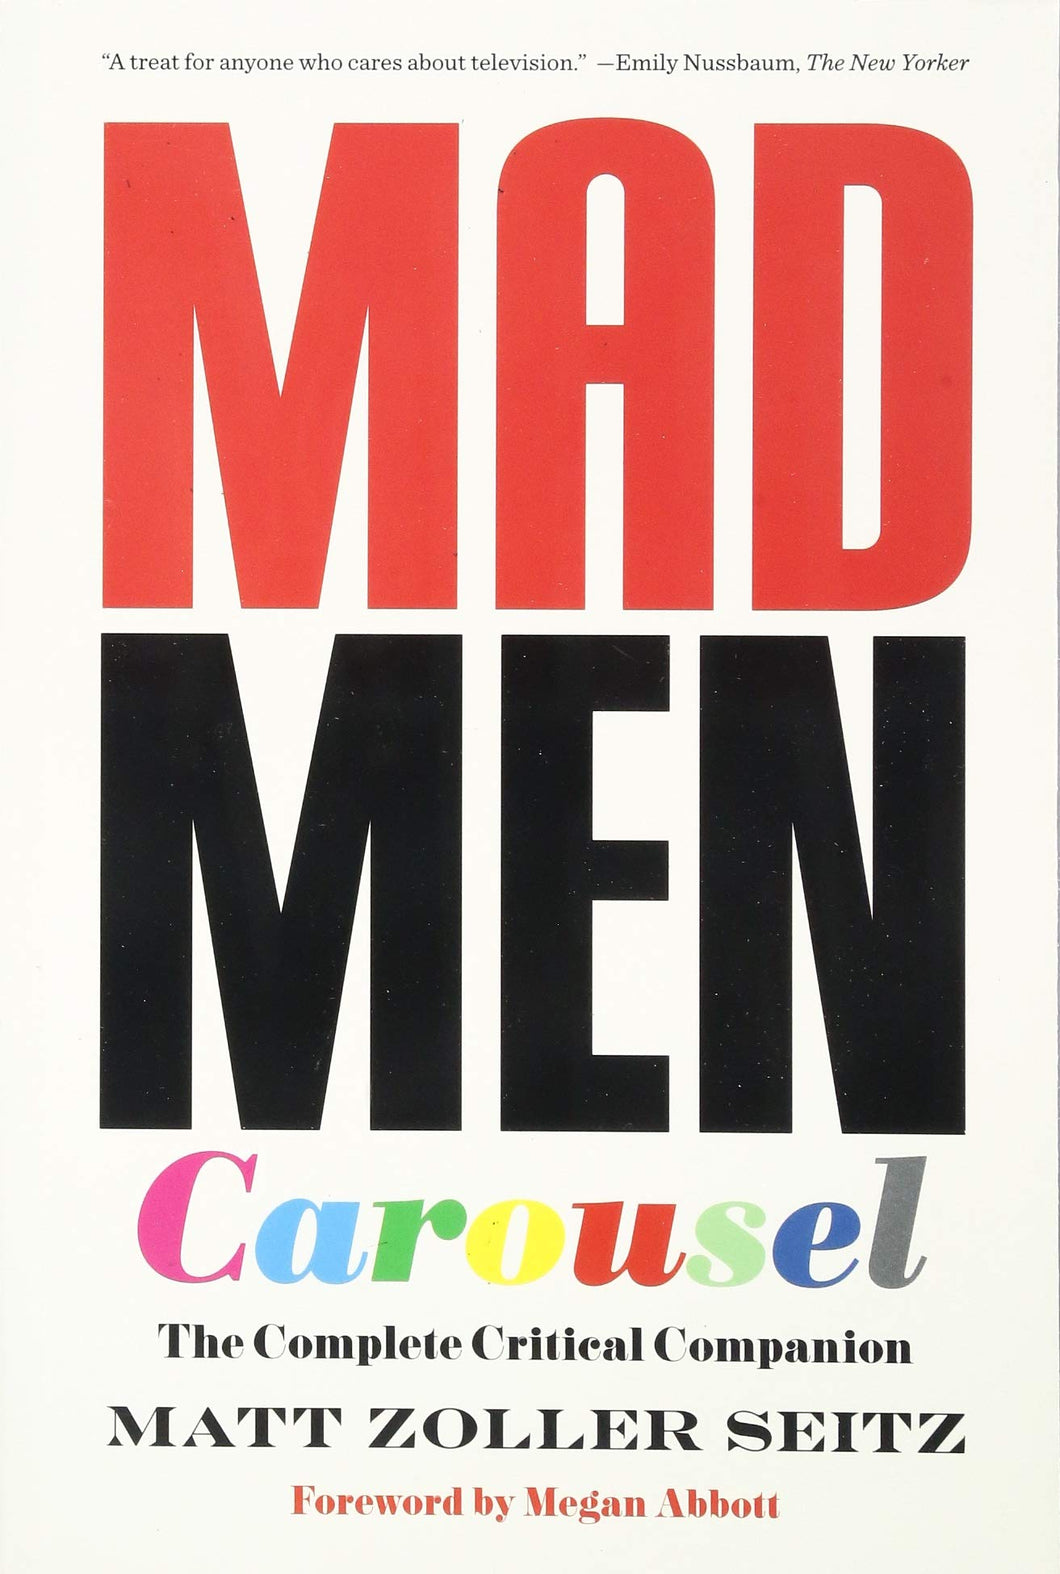 Mad Men Carousel: The Complete Critical Companion (Paperback, SIGNED)